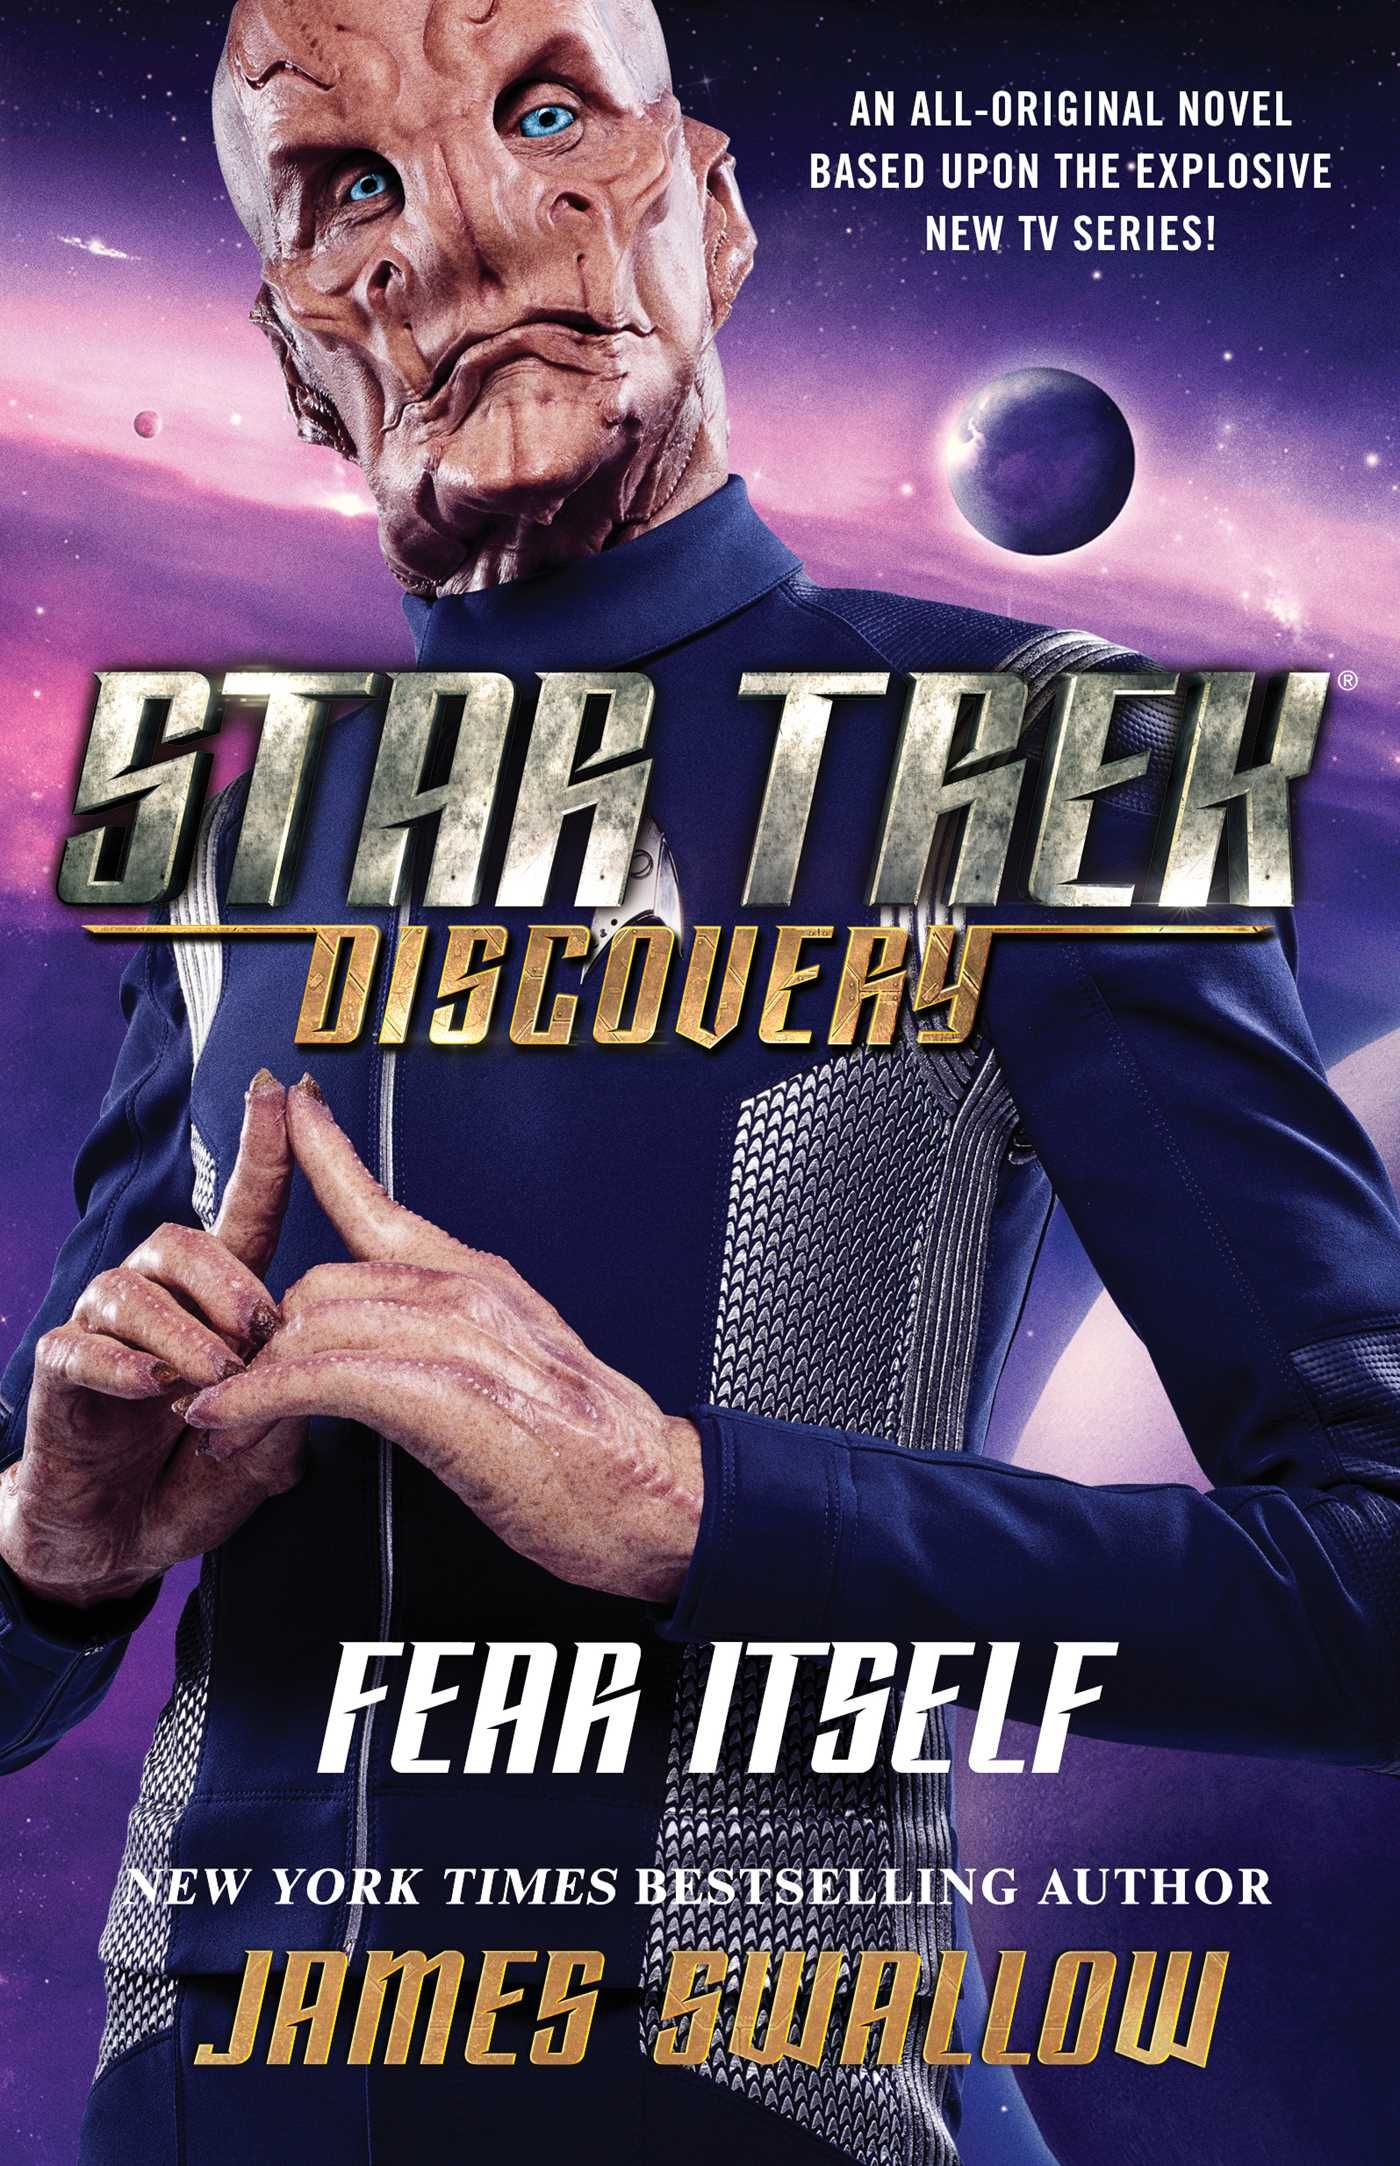 Star Trek Discovery Fear Itself By James Swallow Cover Art